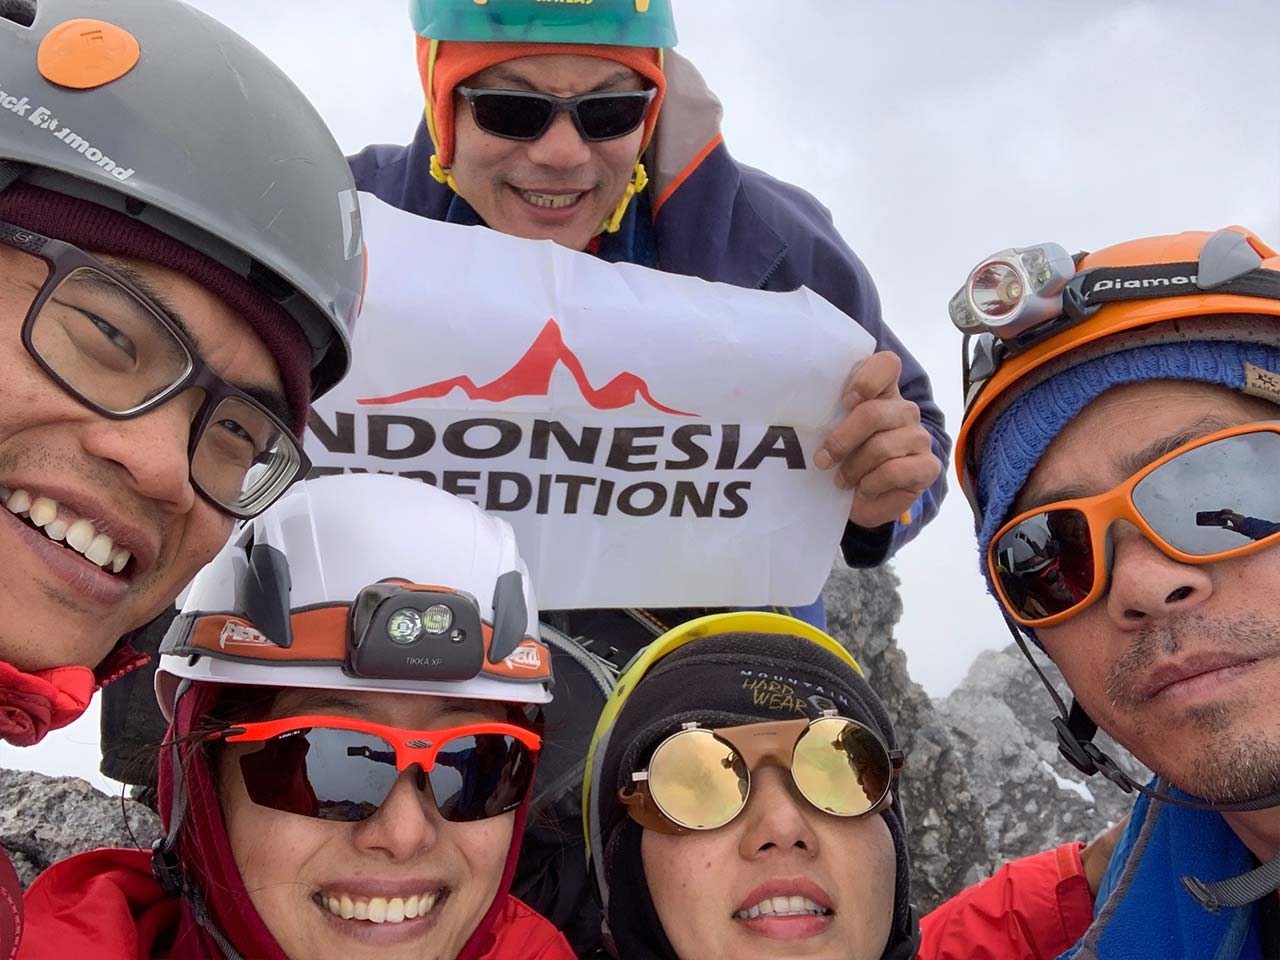 indonesiaexpeditions_news_carstensz_feb-2019_011